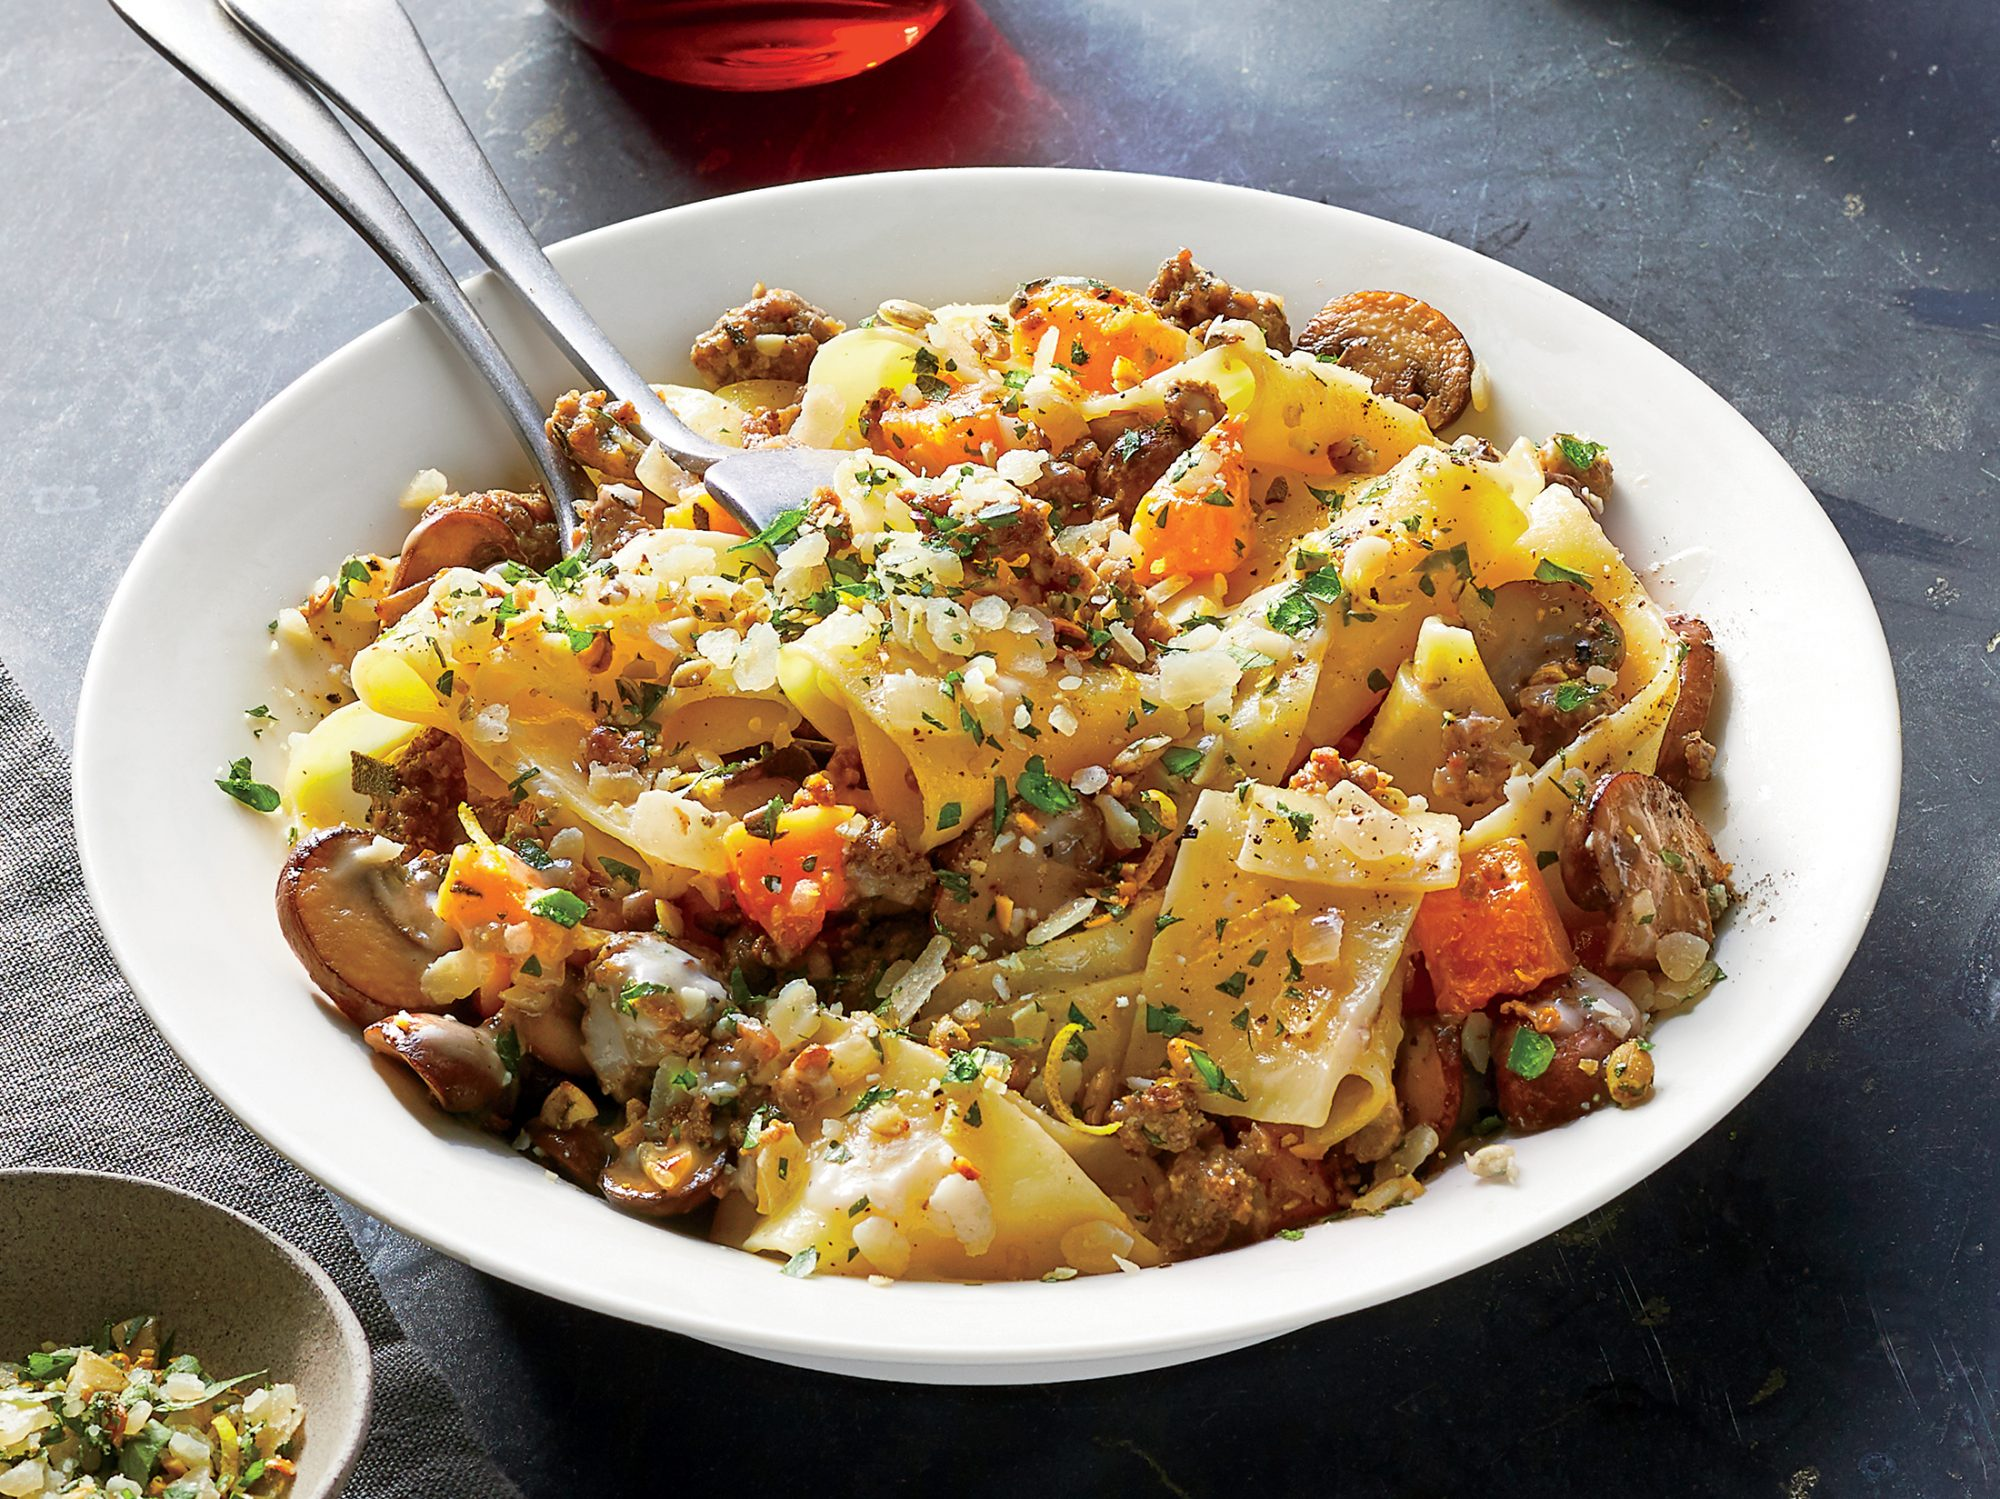 Sausage and Mushroom Pasta With Butternut Squash